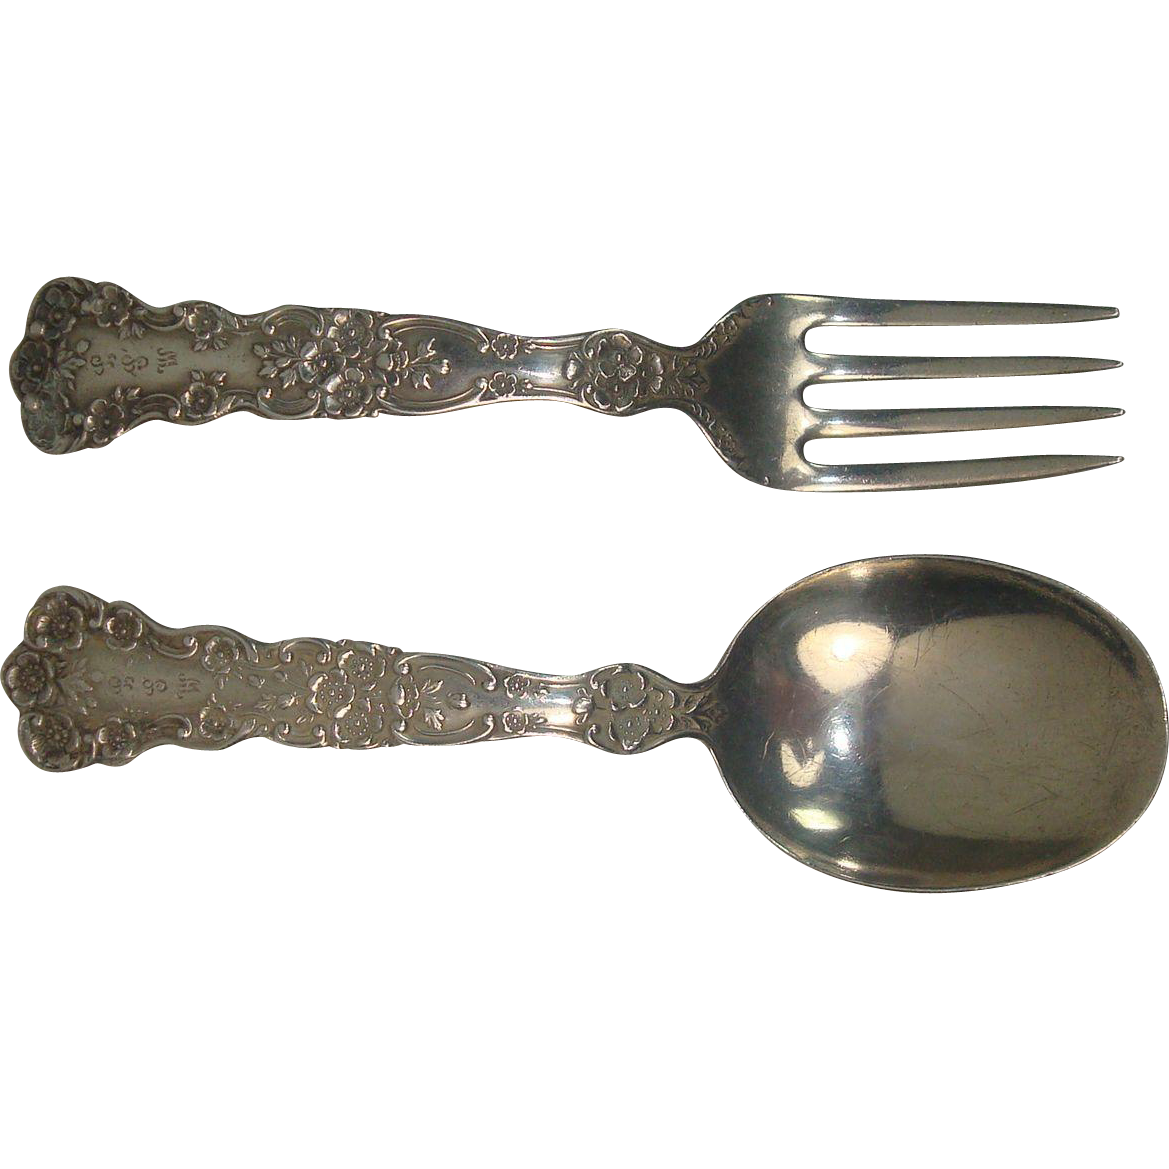 Gorham 1899 Buttercup Baby Spoon and Fork